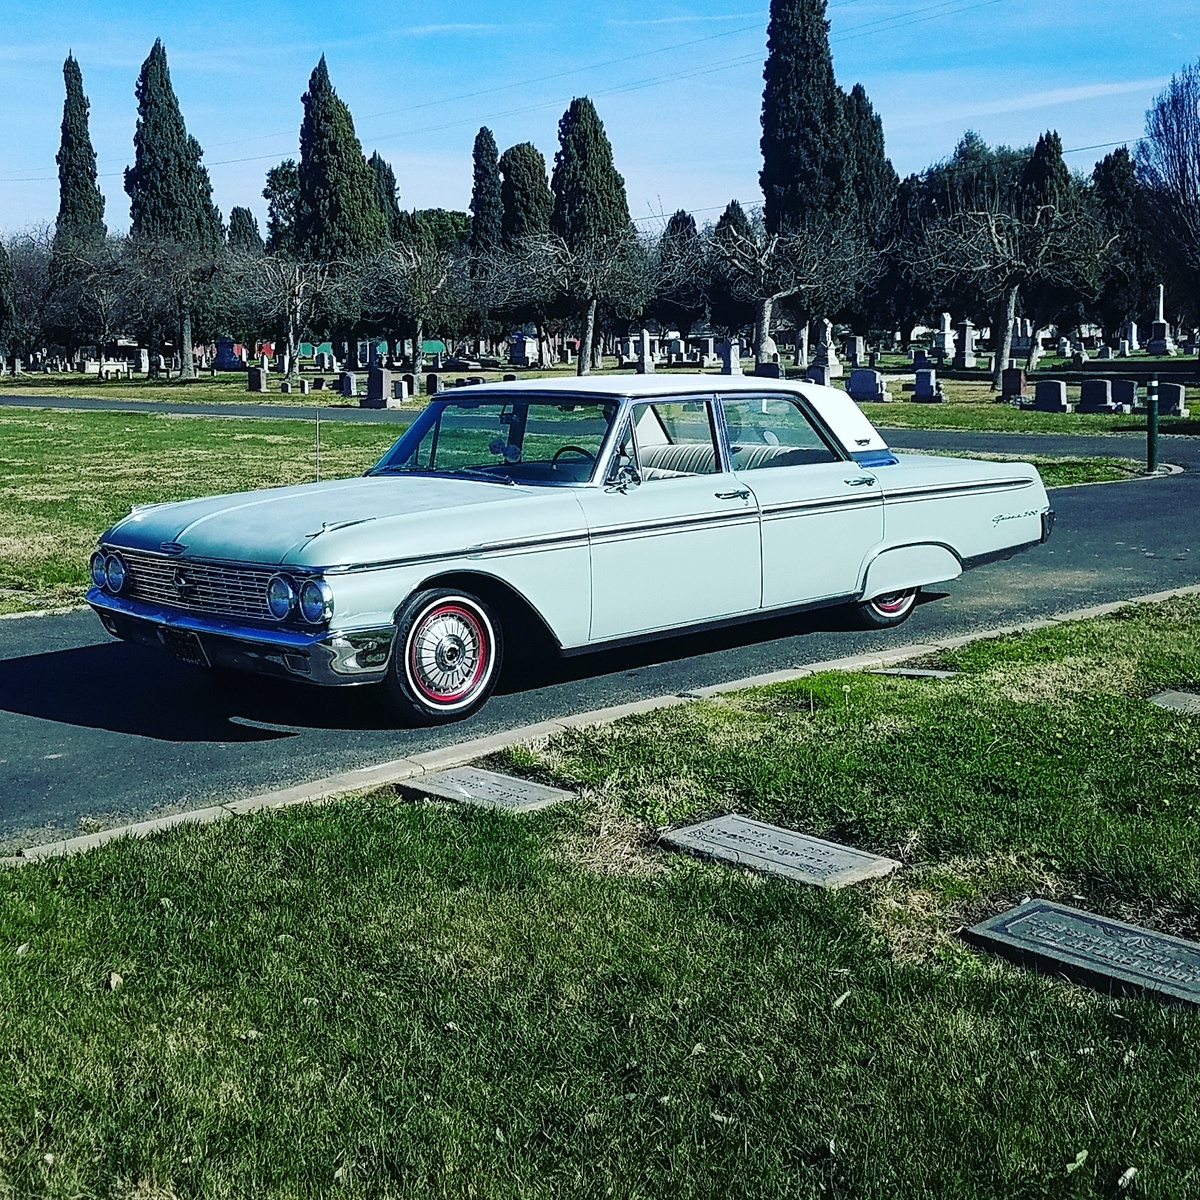 Ford Galaxie Questions - 1962 Ford Galaxie 500 stops taking